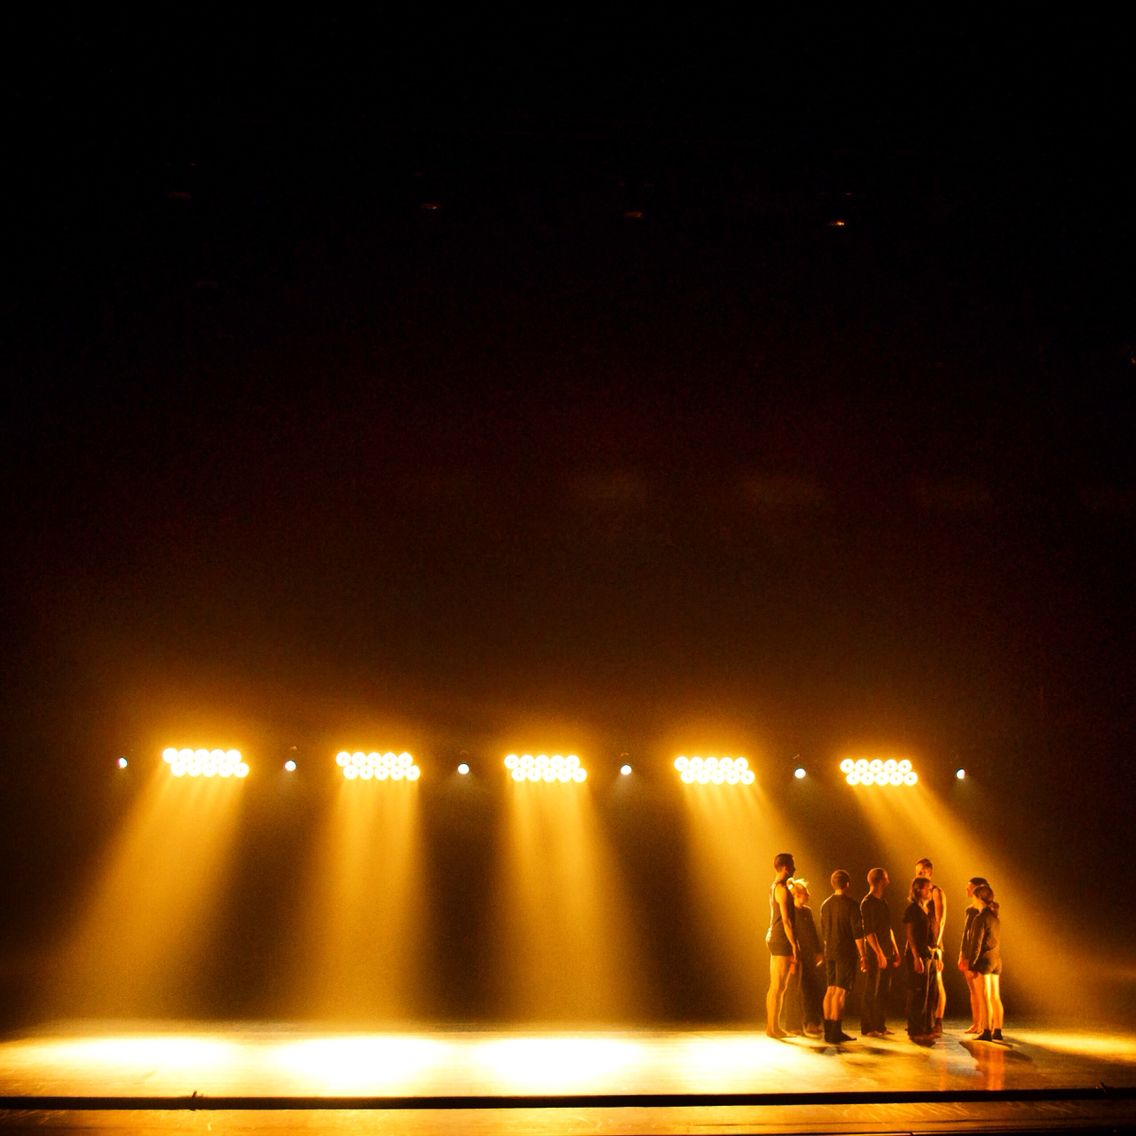 Vertigo Symptoms Come And Go Lighting Design Theatre Stage